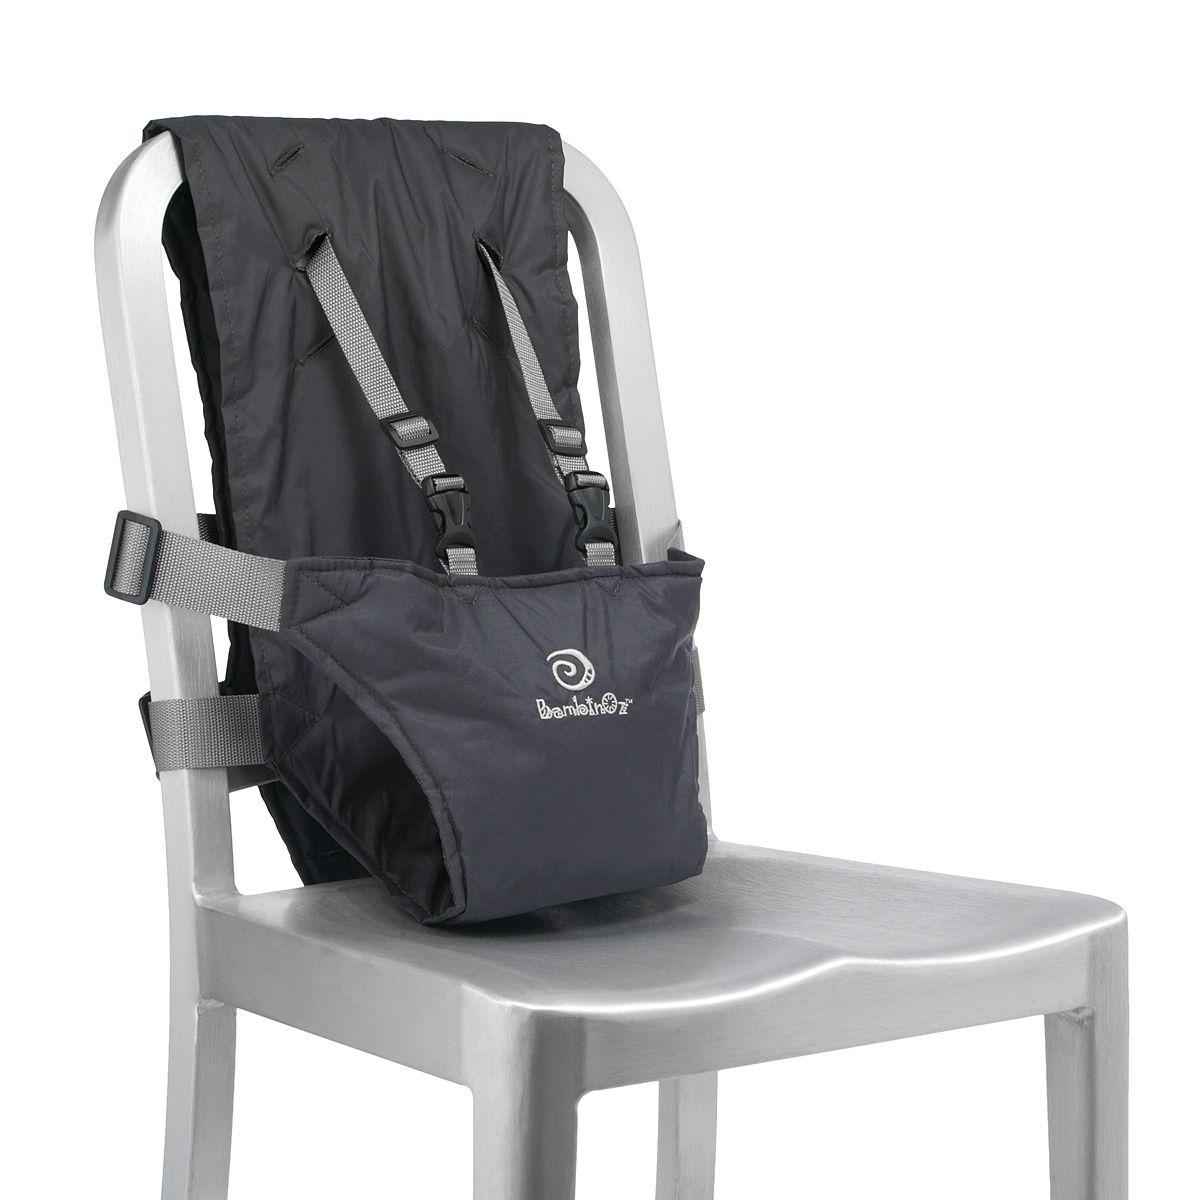 Portachair Harness Portable Baby Chair Bambinoz Idees Pour